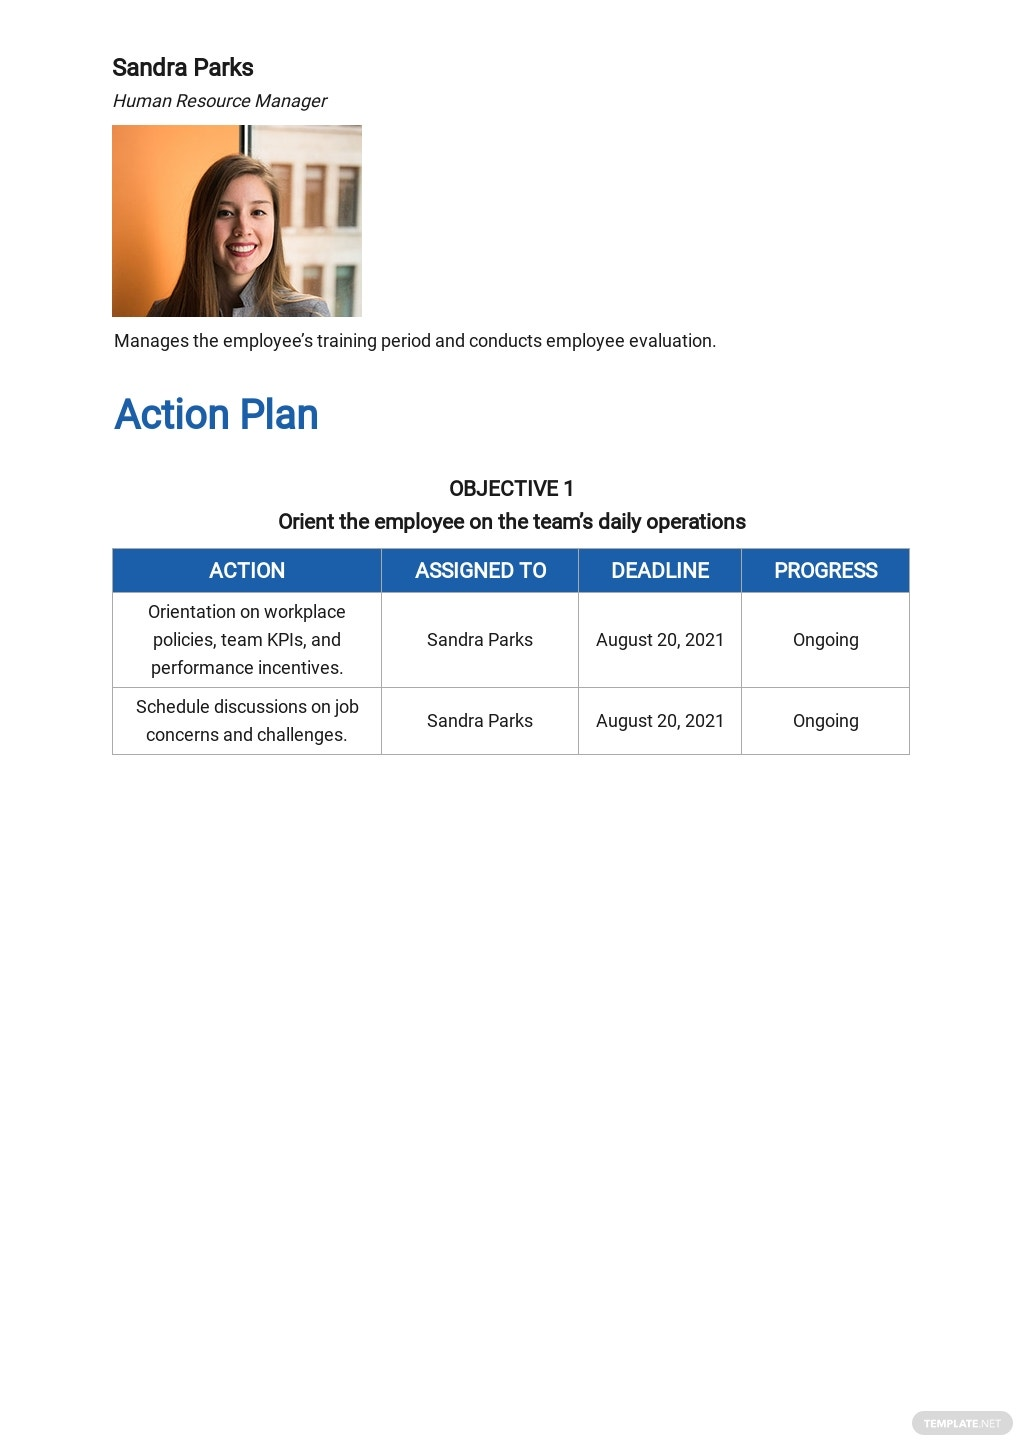 New Employee Training Plan Template [Free PDF] - Google Docs, Word, Apple Pages